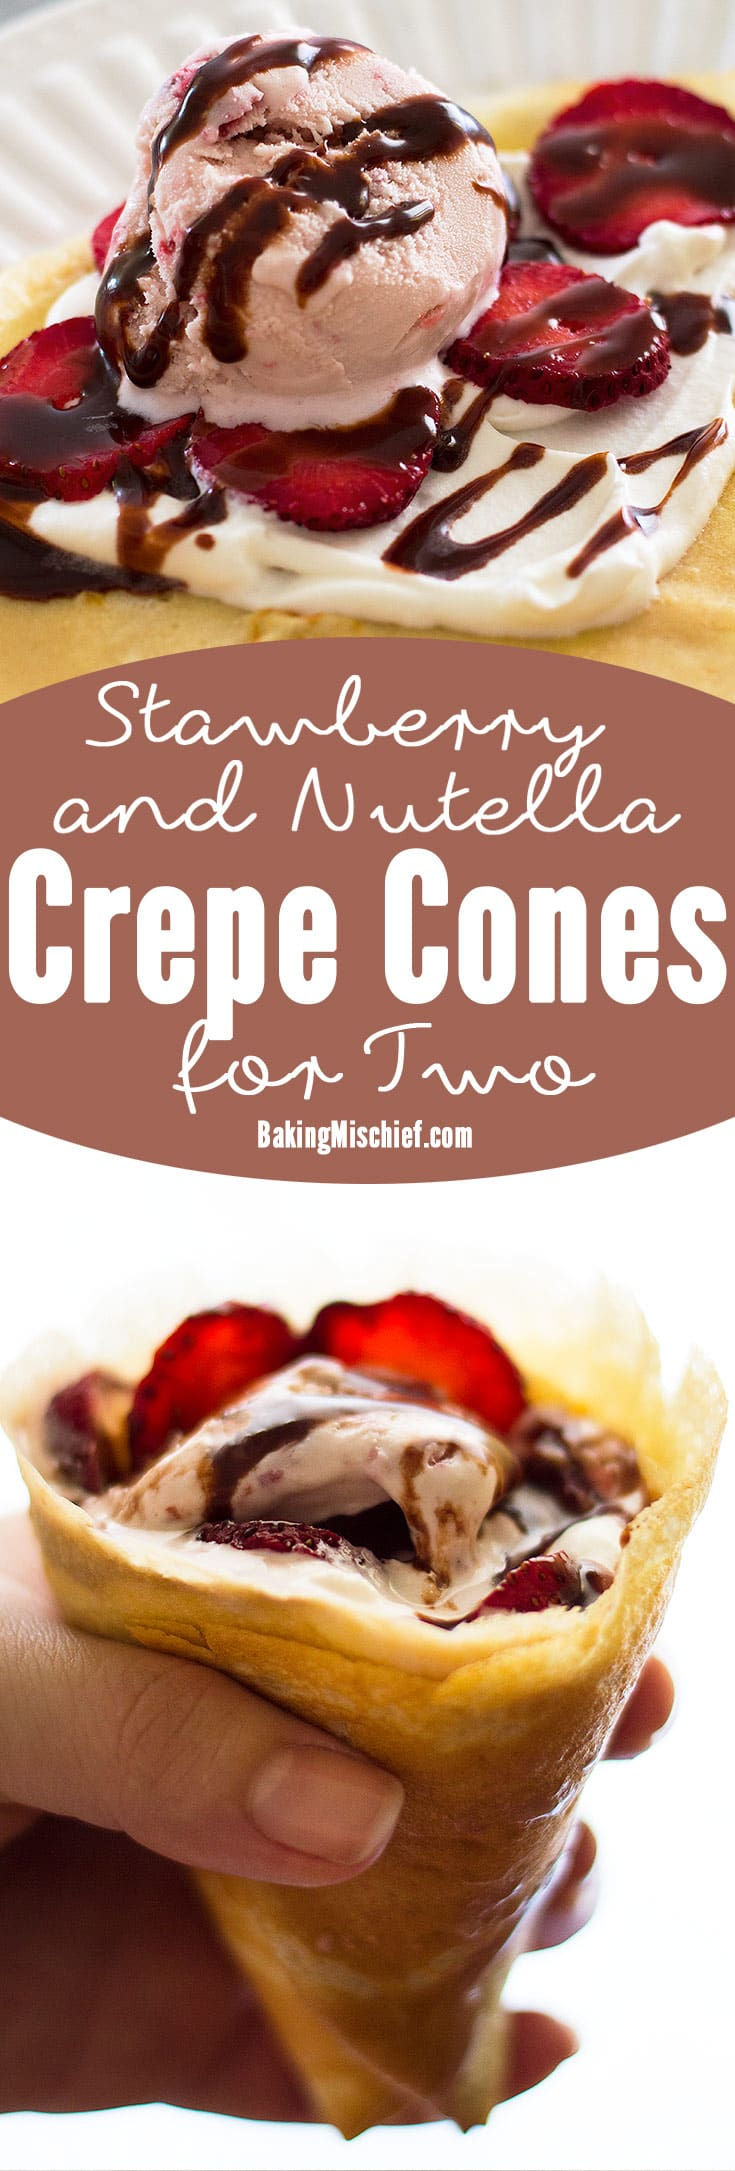 Put leftover crepes to good use and turn them into crepe cones! Perfect for a sunny summer day, these cones are stuffed with strawberry ice cream, fresh strawberries, and whipped cream, and drizzled with a quick and easy Nutella sauce. Recipe includes nutritional information. From BakingMischief.com